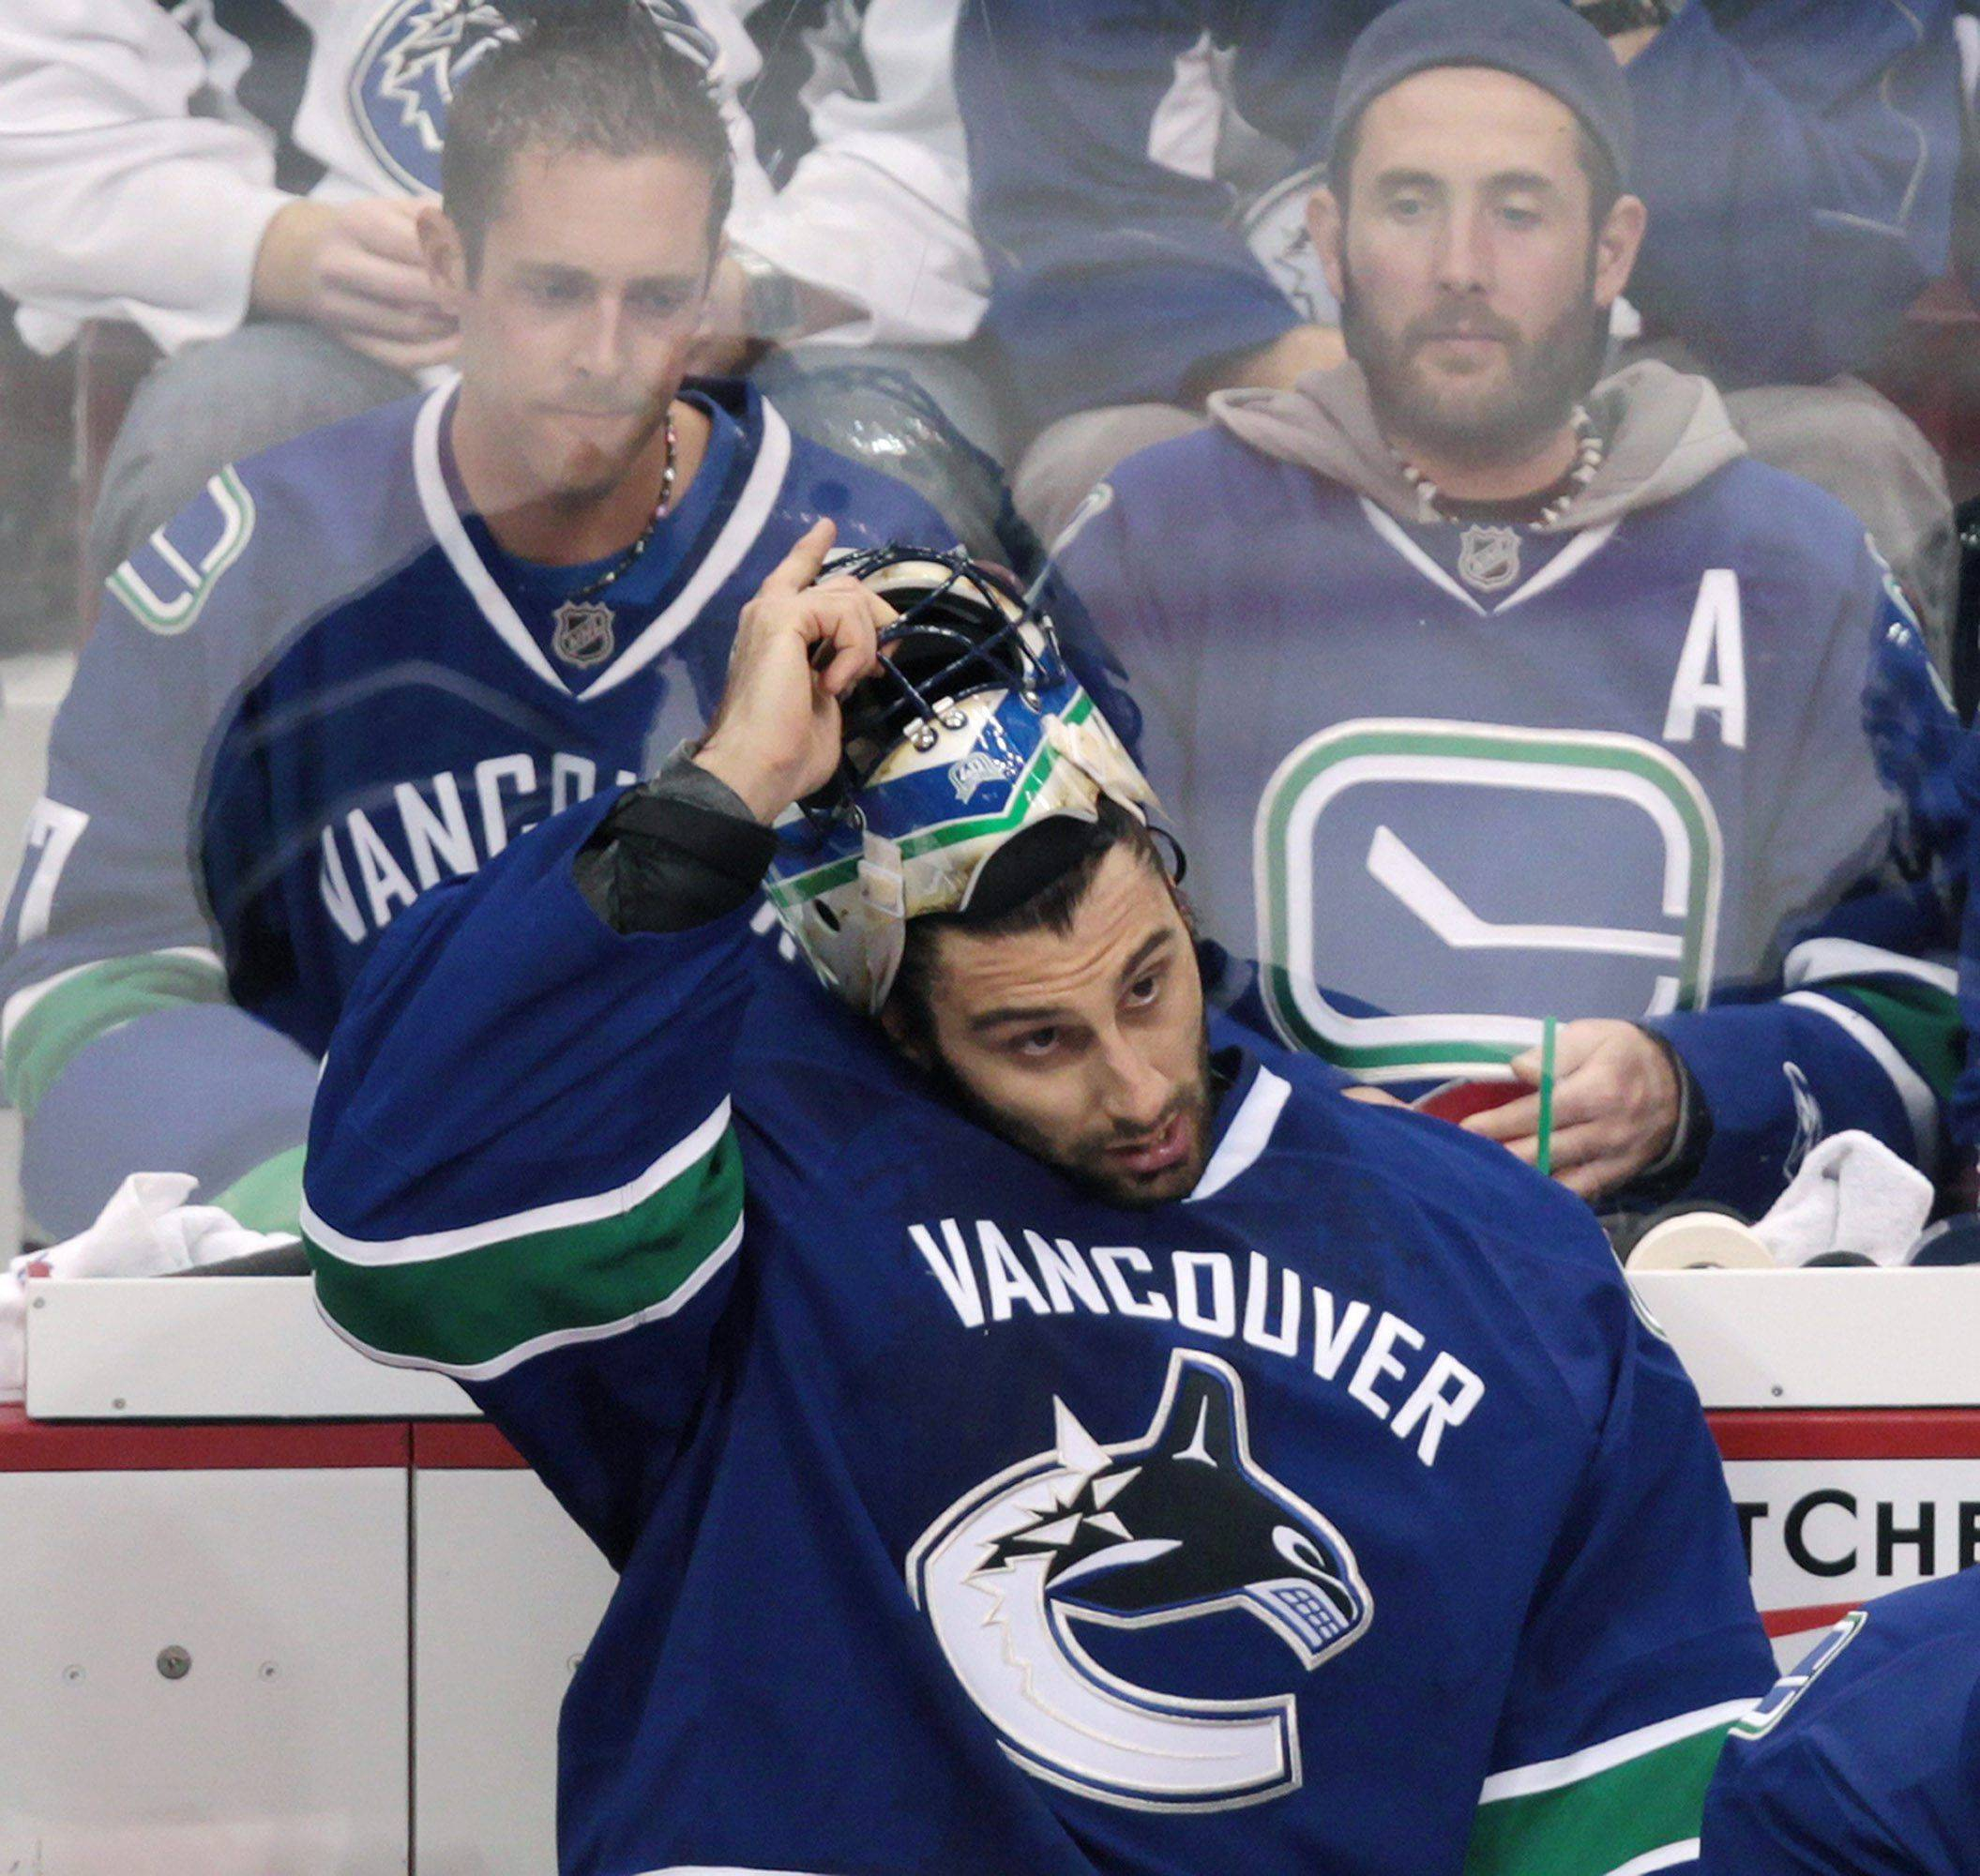 Vancouver's Roberto Luongo takes off his mask on the bench after being replaced by backup goalie Cory Schneider during the second period of Game 5 of the Stanley Cup playoffs first-round series against the Blackhawks.